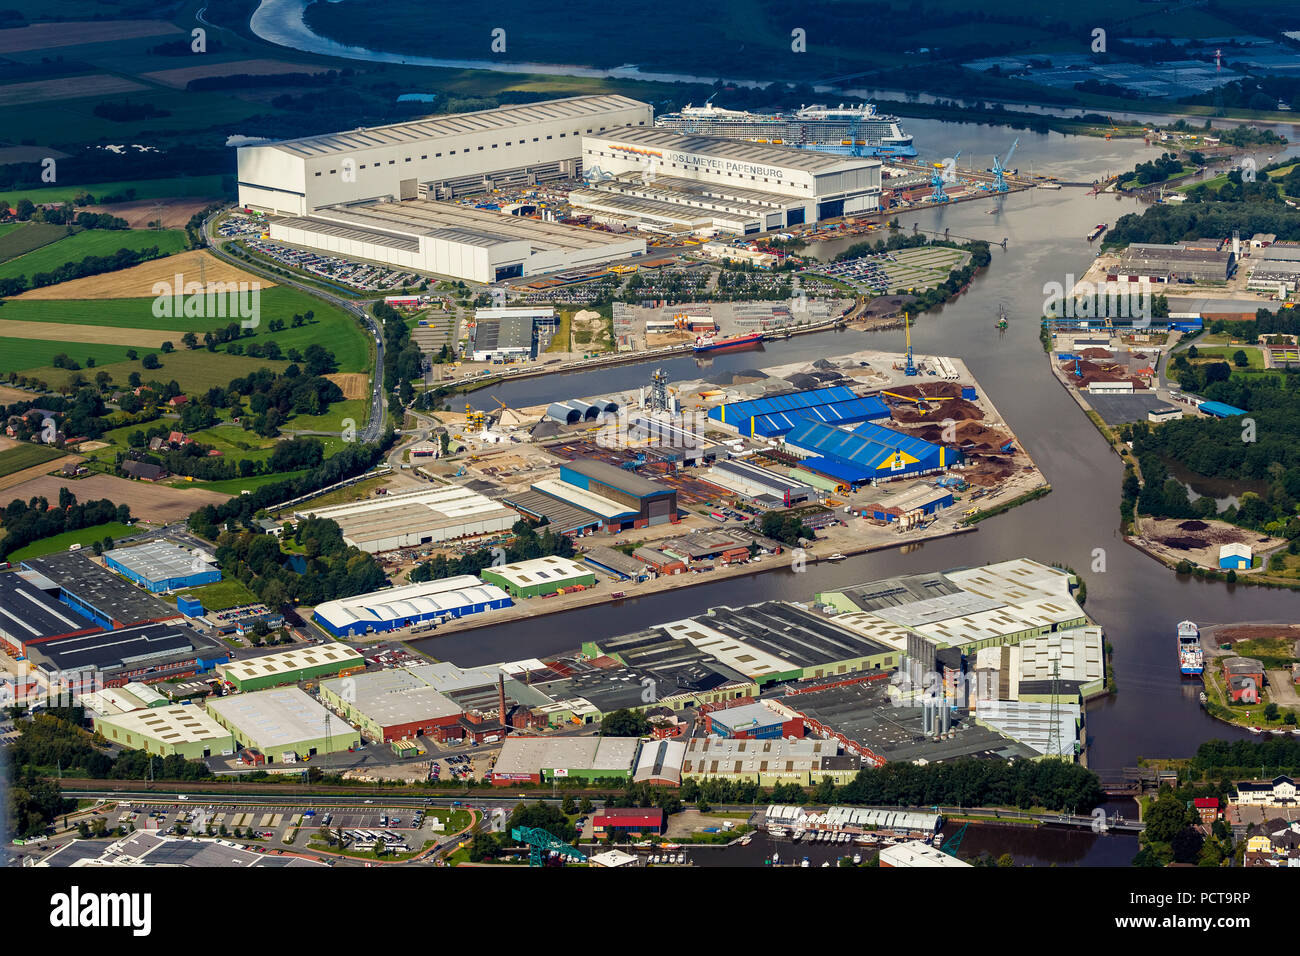 Aerial photo, shipyard, Papenburg Port on the Ems River with Jos L Meyerwerft Shipyard and Quantum of the Seas cruise liner, Royal Caribbean Papenburg, Emsland, Lower Saxony, Germany - Stock Image